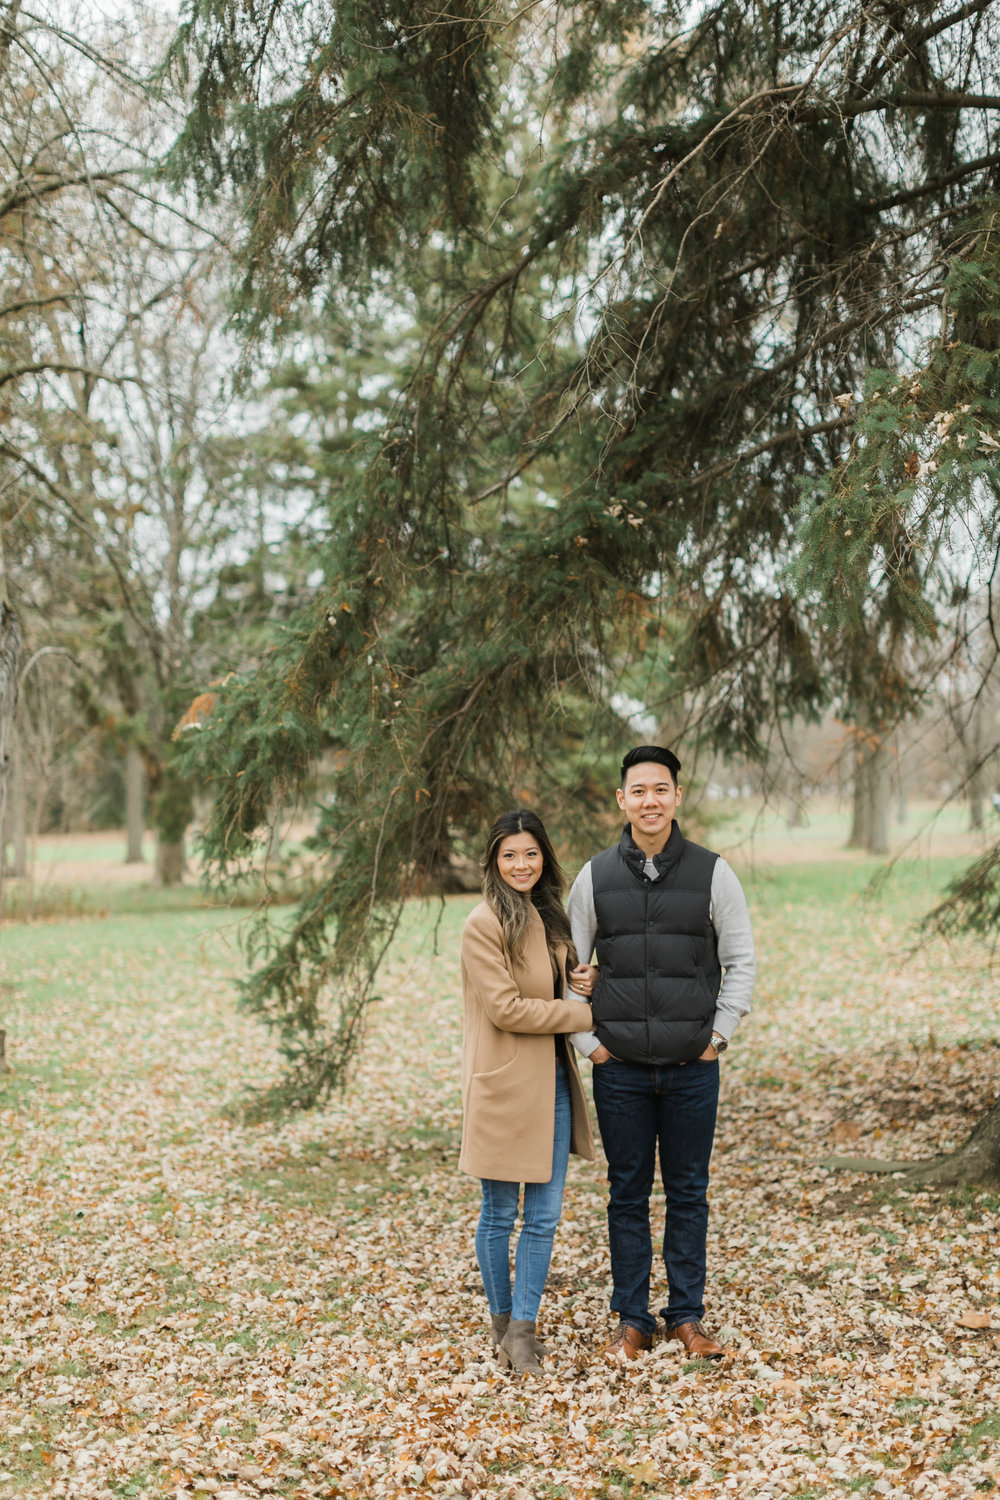 Julia___Rene_Engagement_Session___High._Res._Finals_0001.jpg